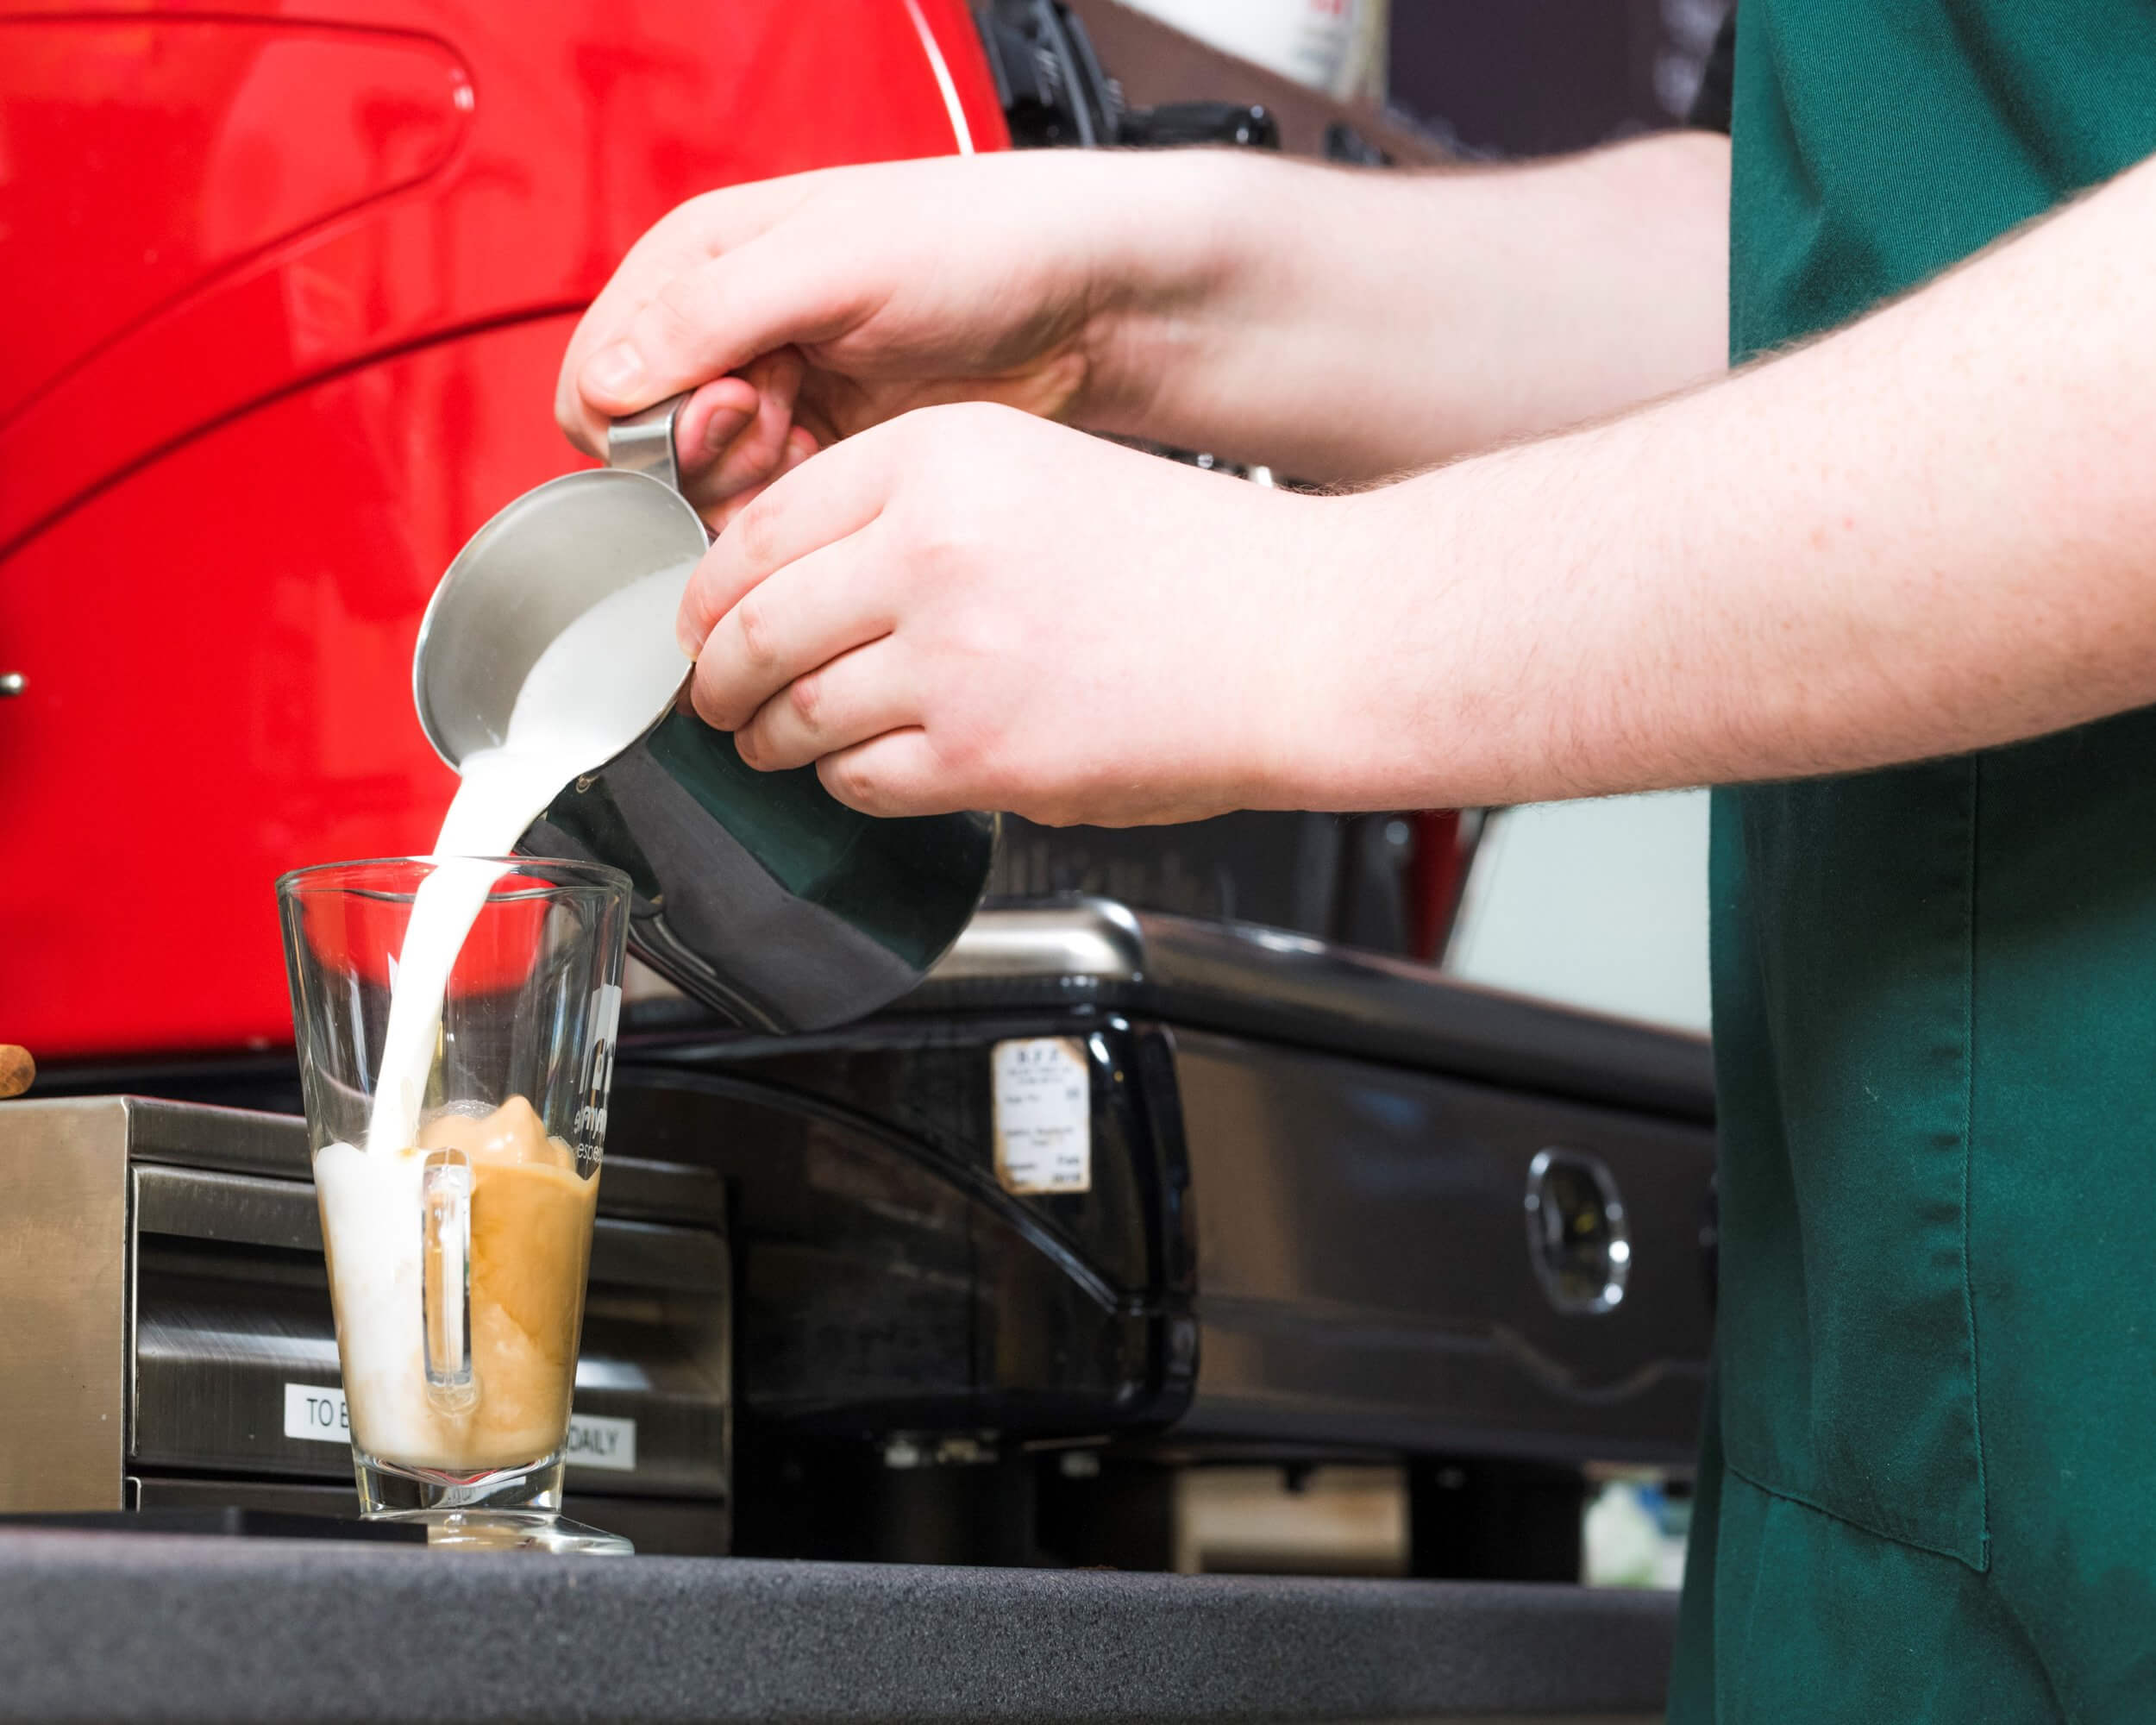 Food & Hospitality Training - Ensure your team has the training and qualifications to succeed.REHIS Elementary Food Hygiene CertificateBarista Training | Front of House | Customer ServiceContact us today to discuss your hospitality training needs.